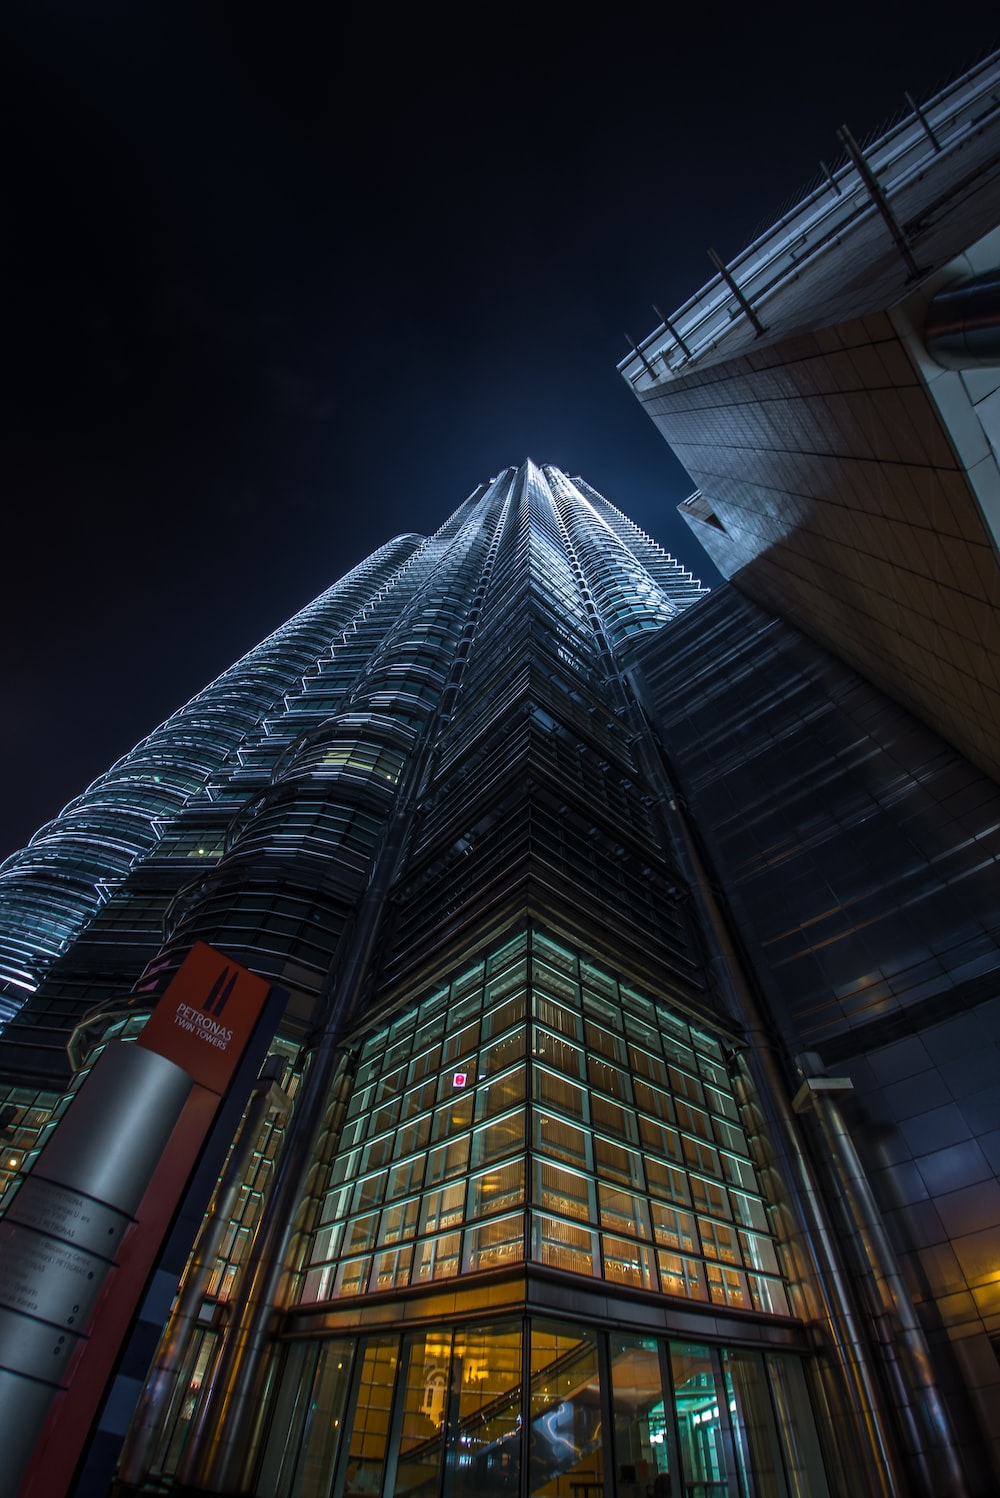 worms-eye view photo of building during nighttime